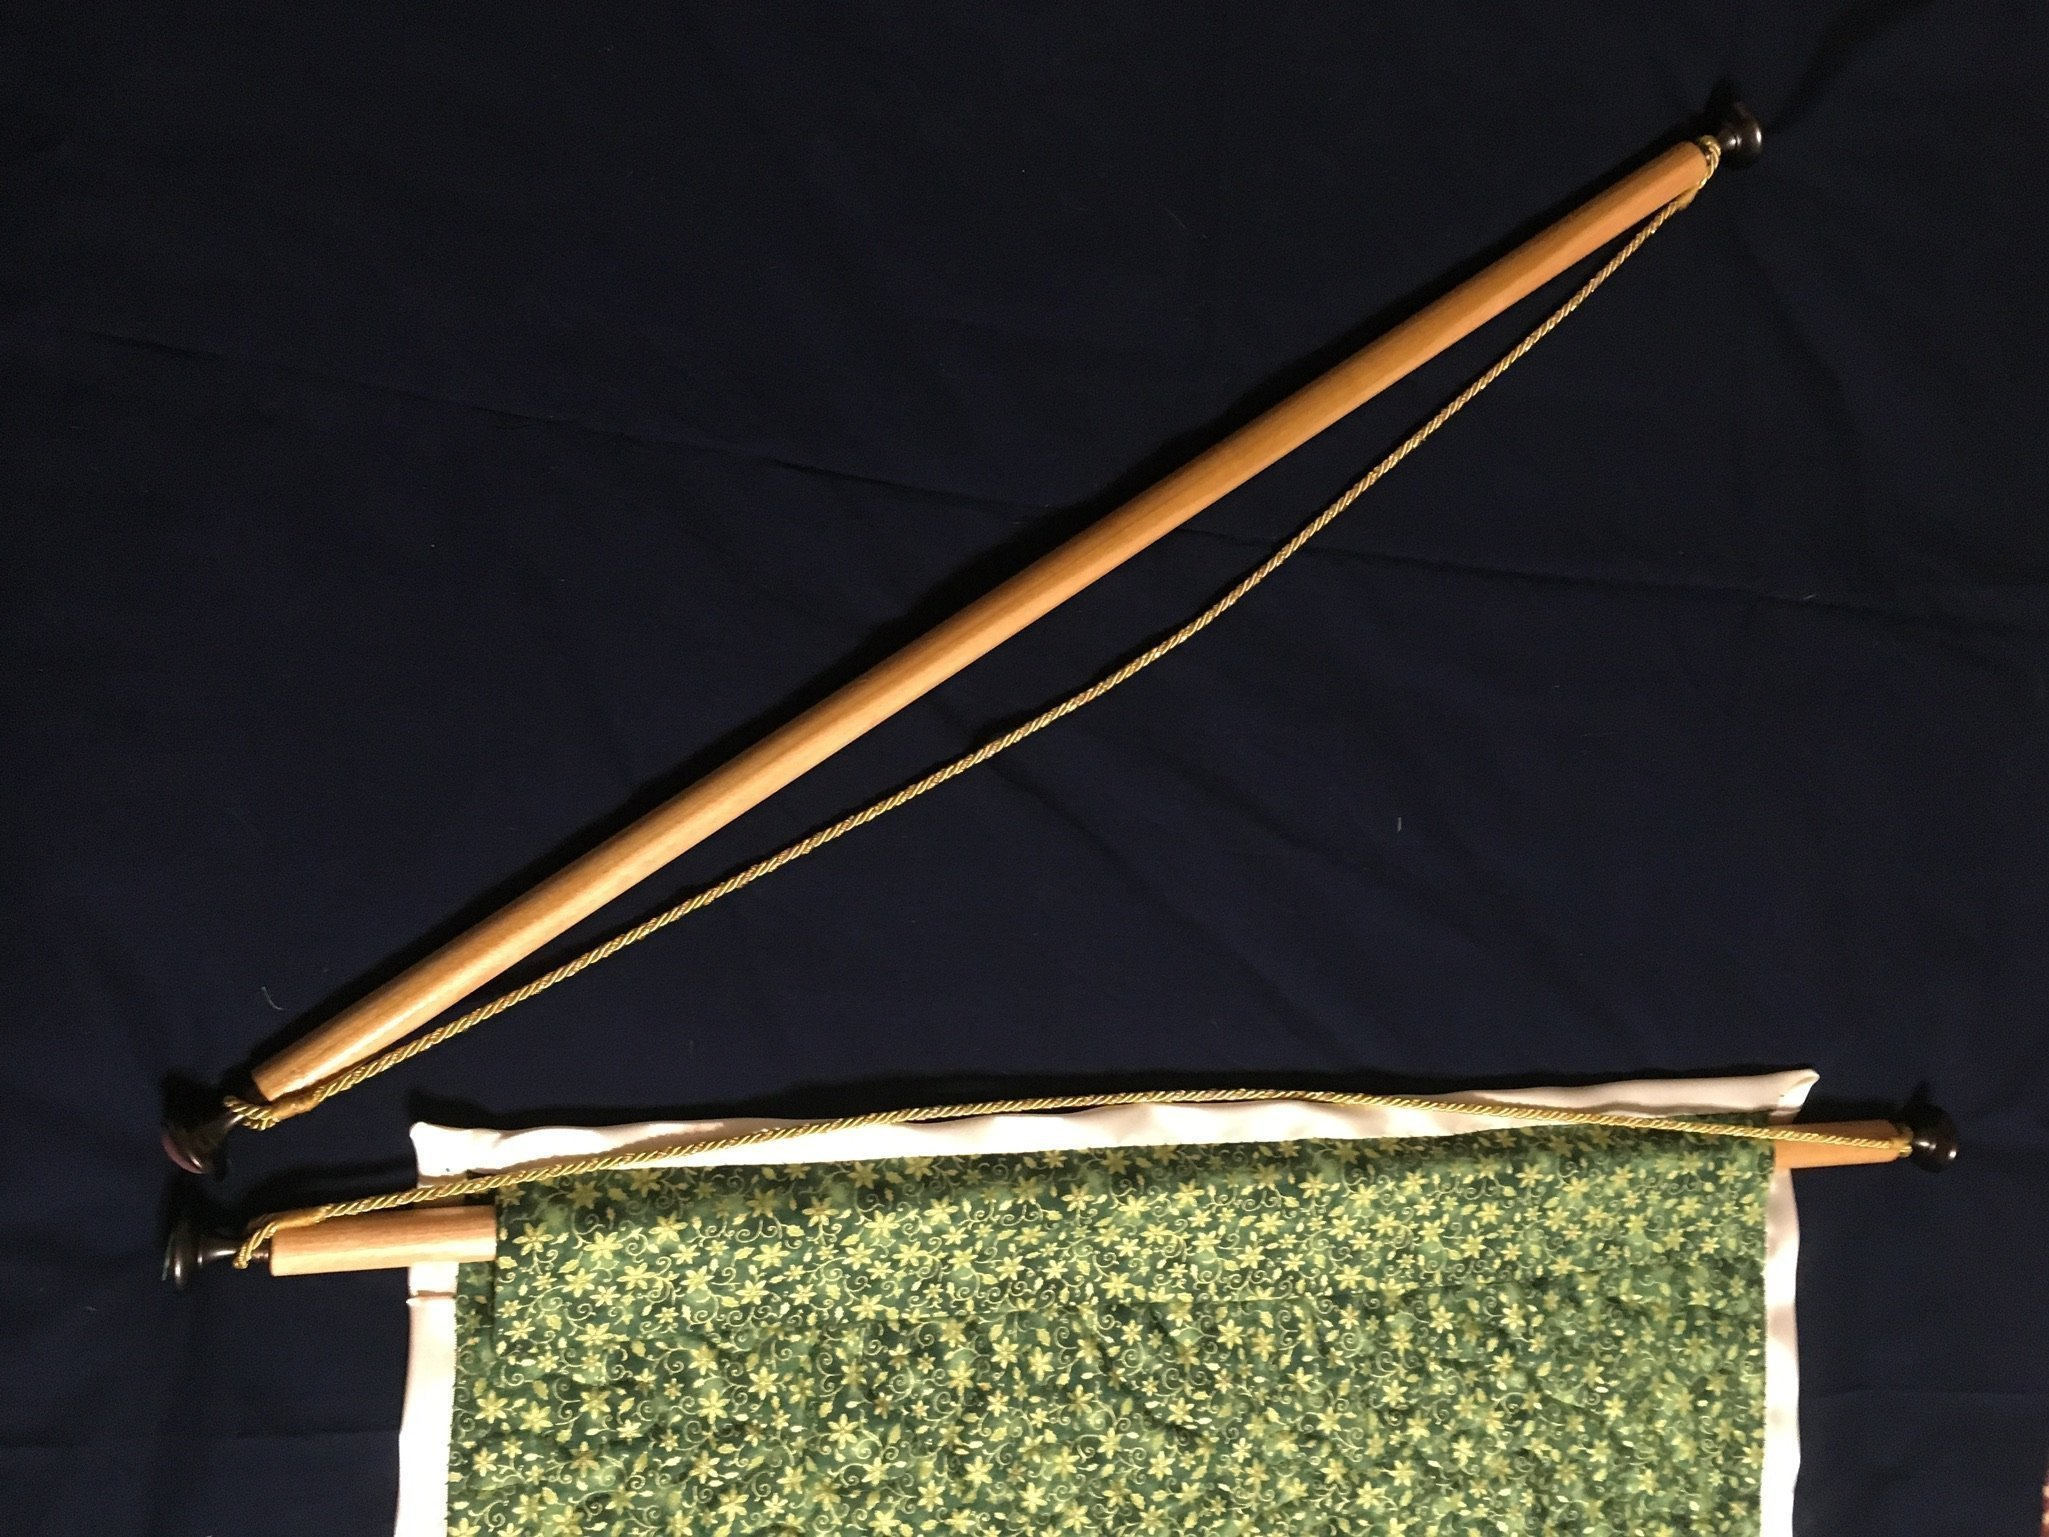 Custom Wall-hanging Rod for Quilts, Tapestries or Banners - custom length 18-28'' long